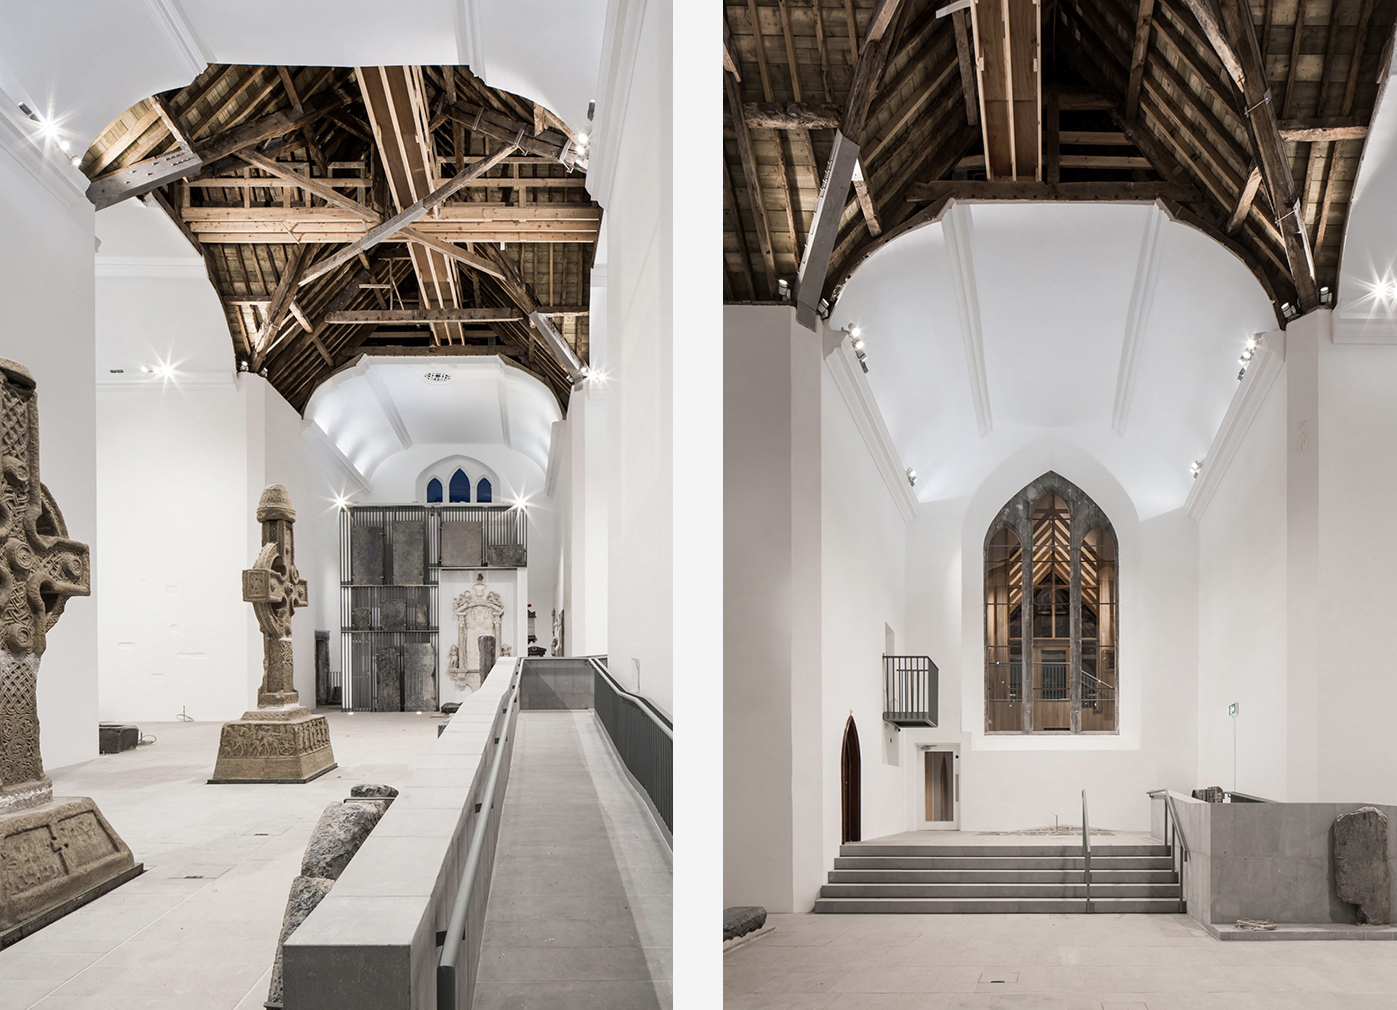 The most innovative adaptive reuse projects of 2019: Medieval Mile Museum, Kilkenny, Ireland